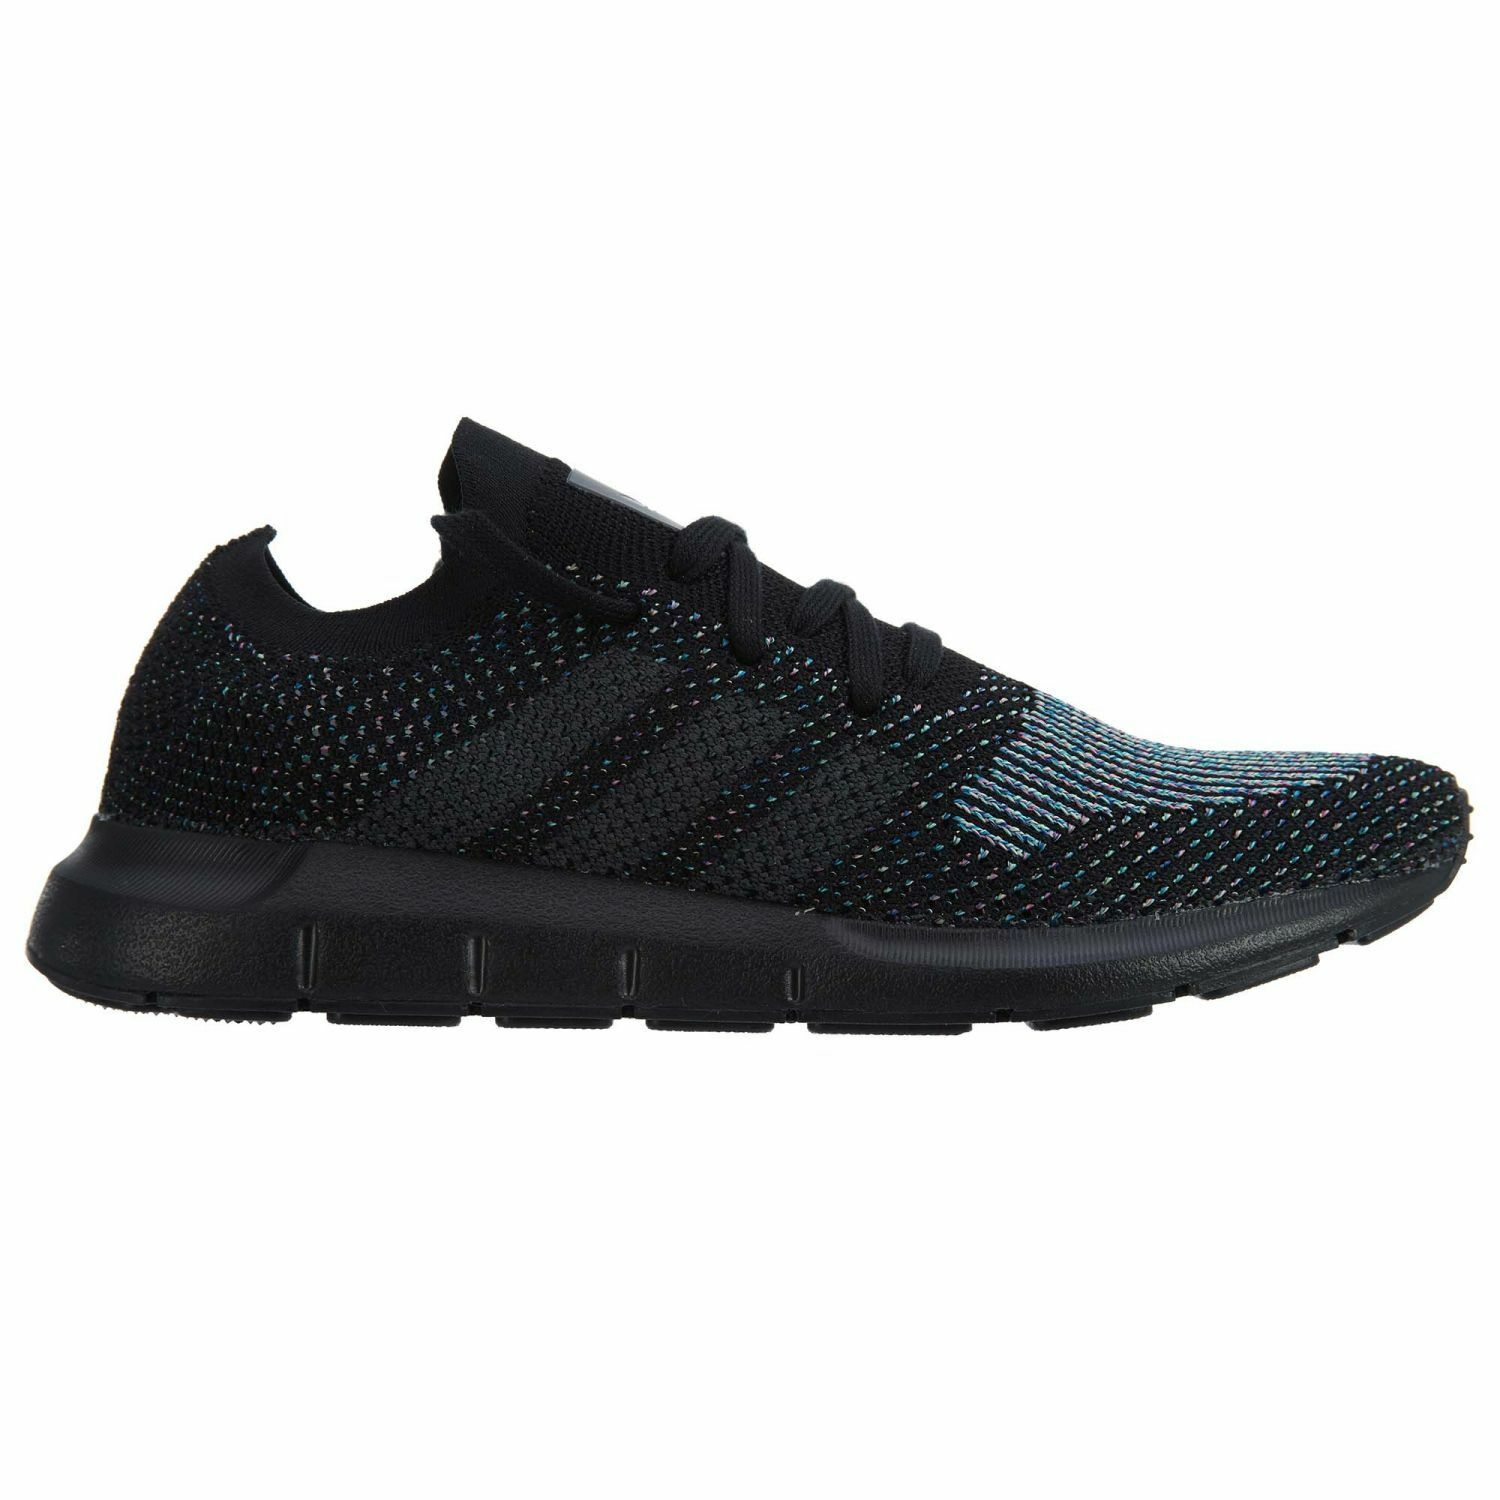 Adidas Swift Run PK Mens CG4127 Black Grey Primeknit Running Shoes Comfortable